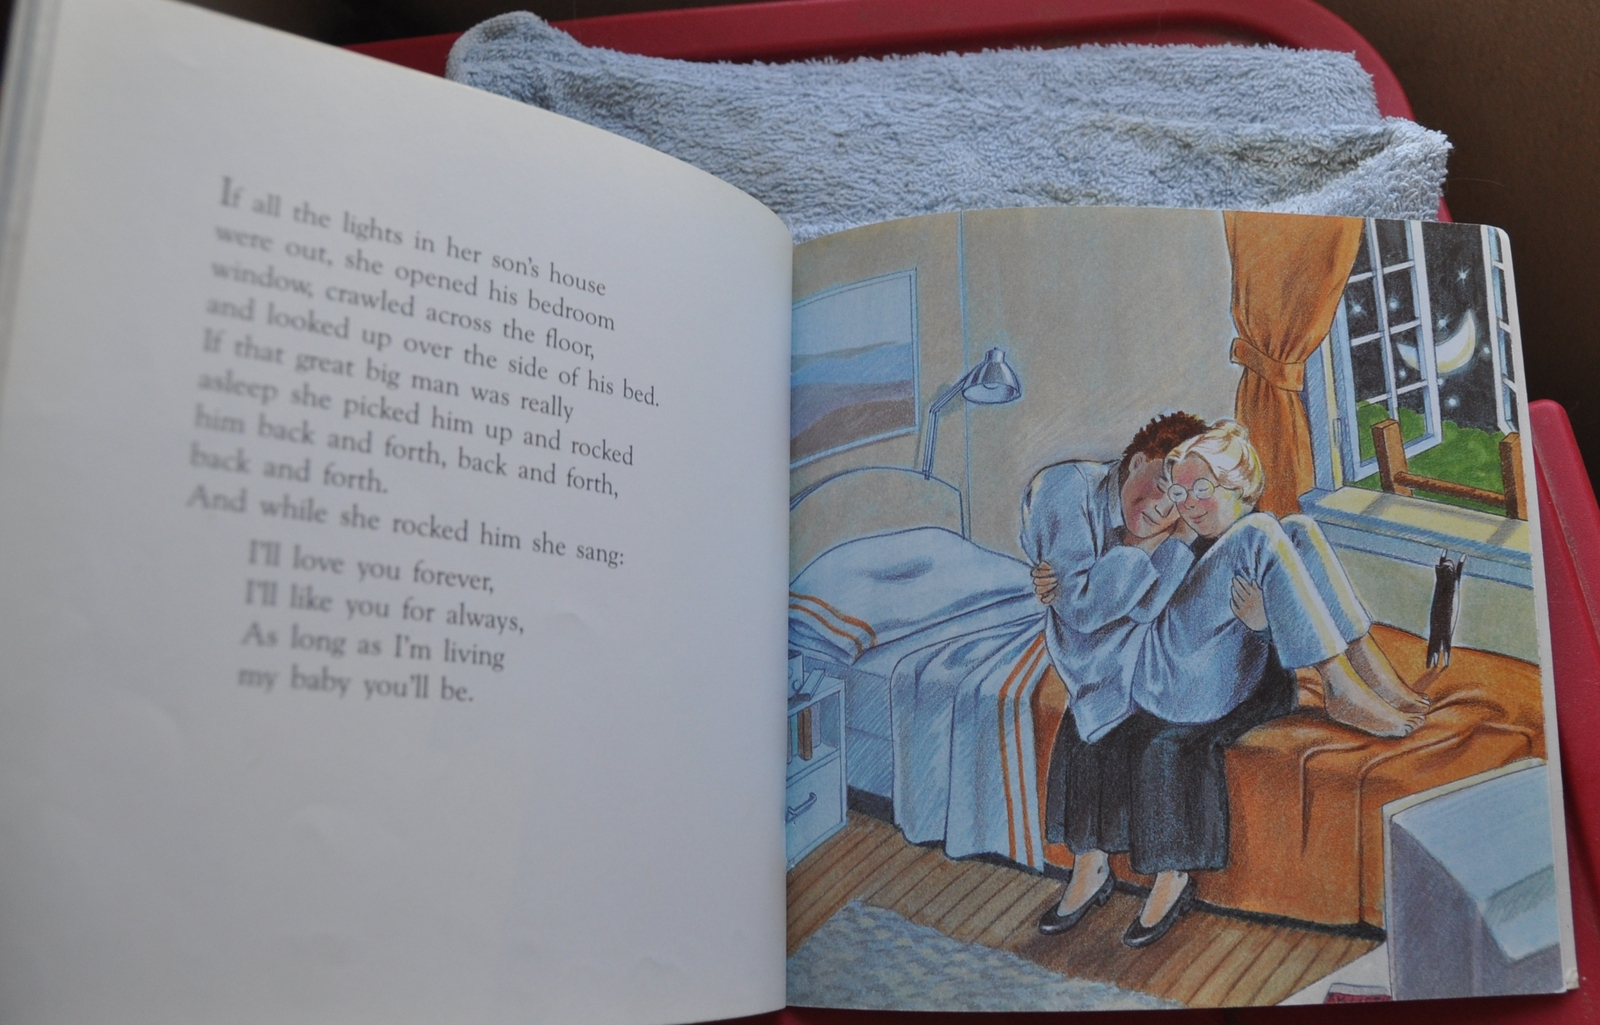 Love You Forever by Robert Munsch - BEST STORY EVER about a Mom / Mother's Love